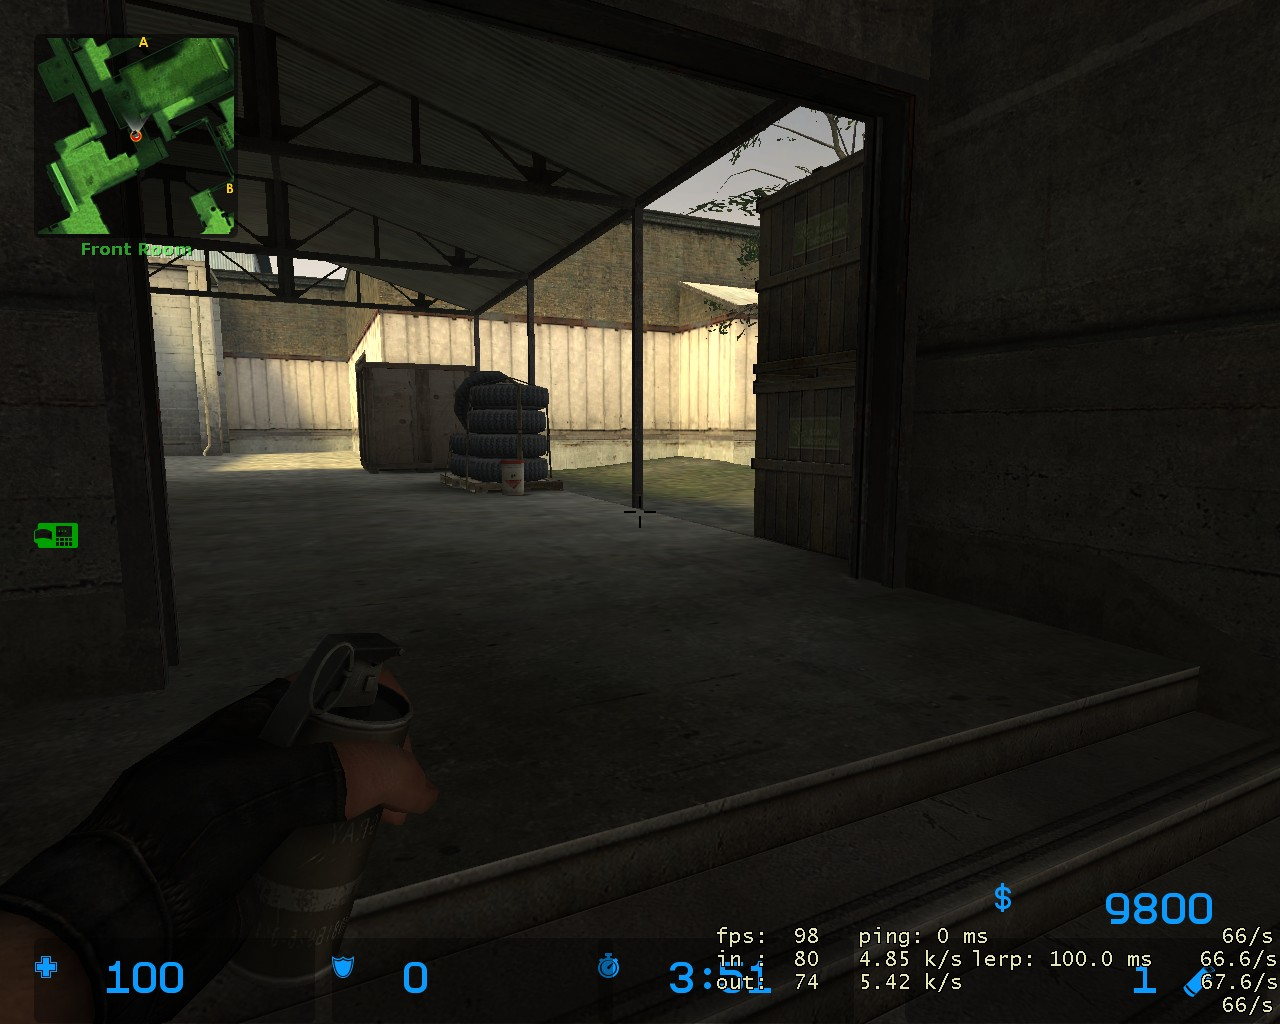 Ian's friend prime-de_season-mid-smoke-jpg